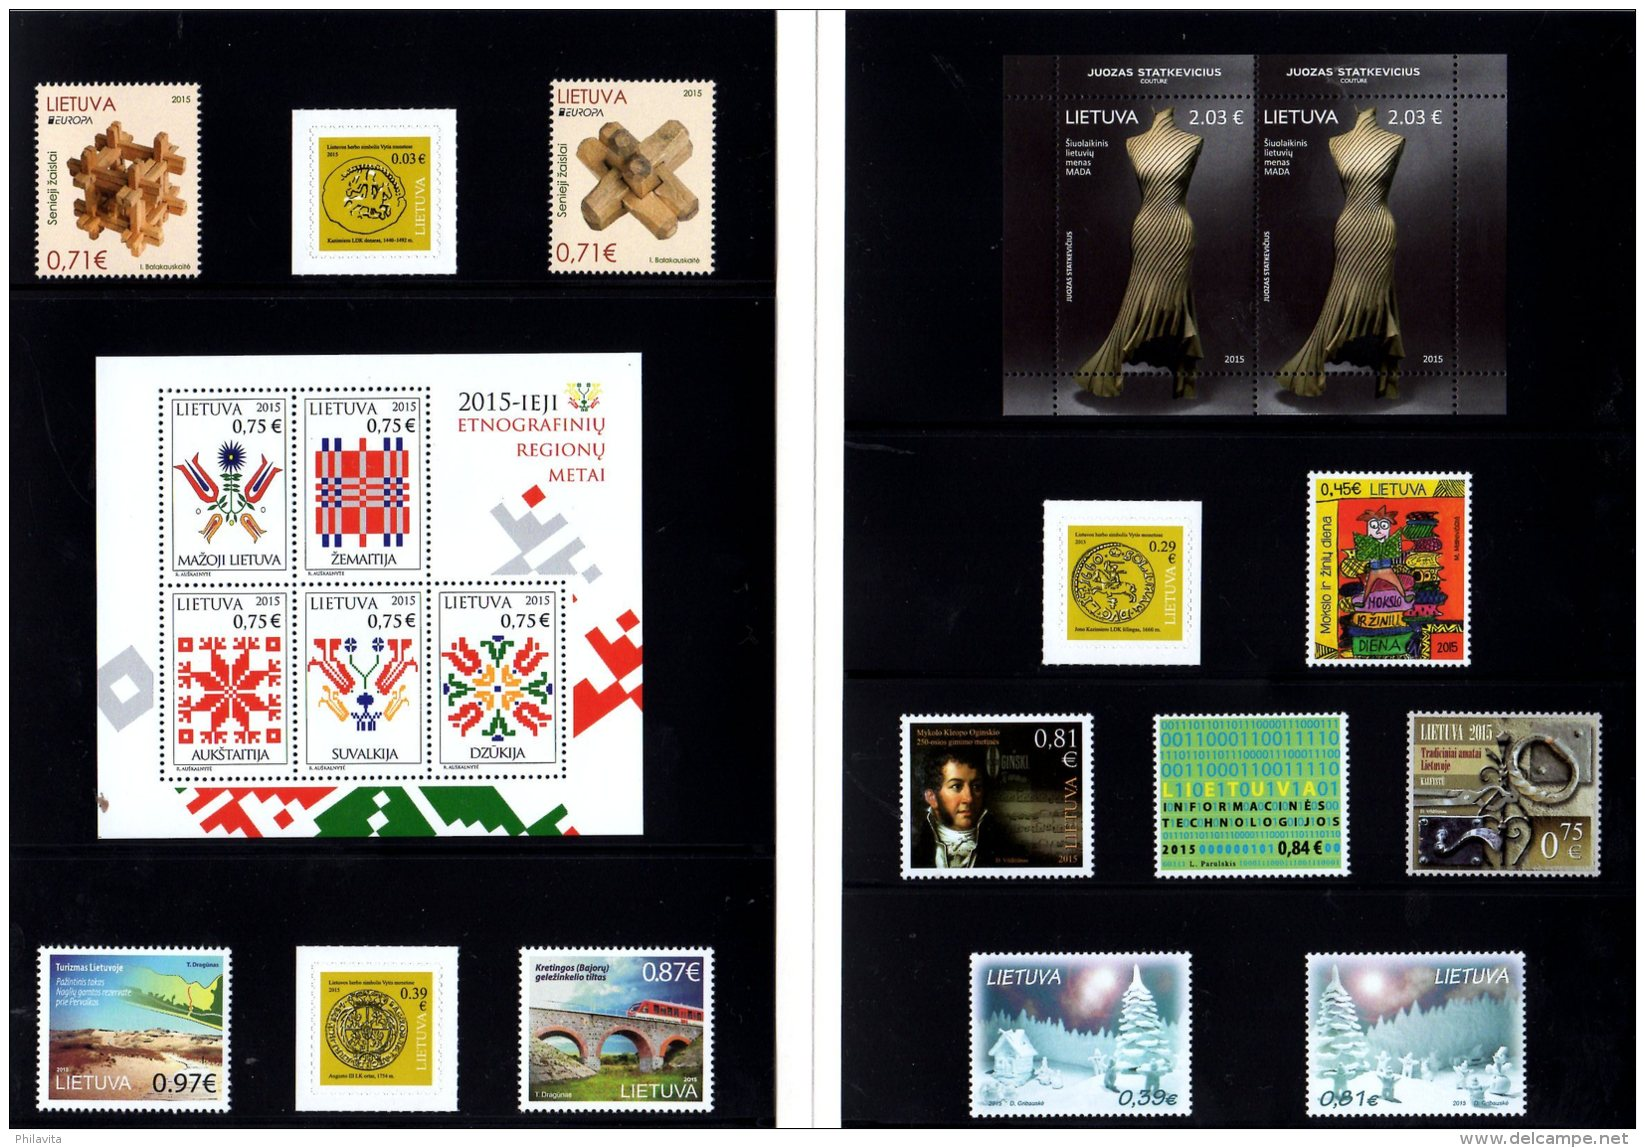 2015 Lithuania -Year Set In Folder - As Issued By Lithuanian Post First Year Of The Euro Values Only - Lithuania